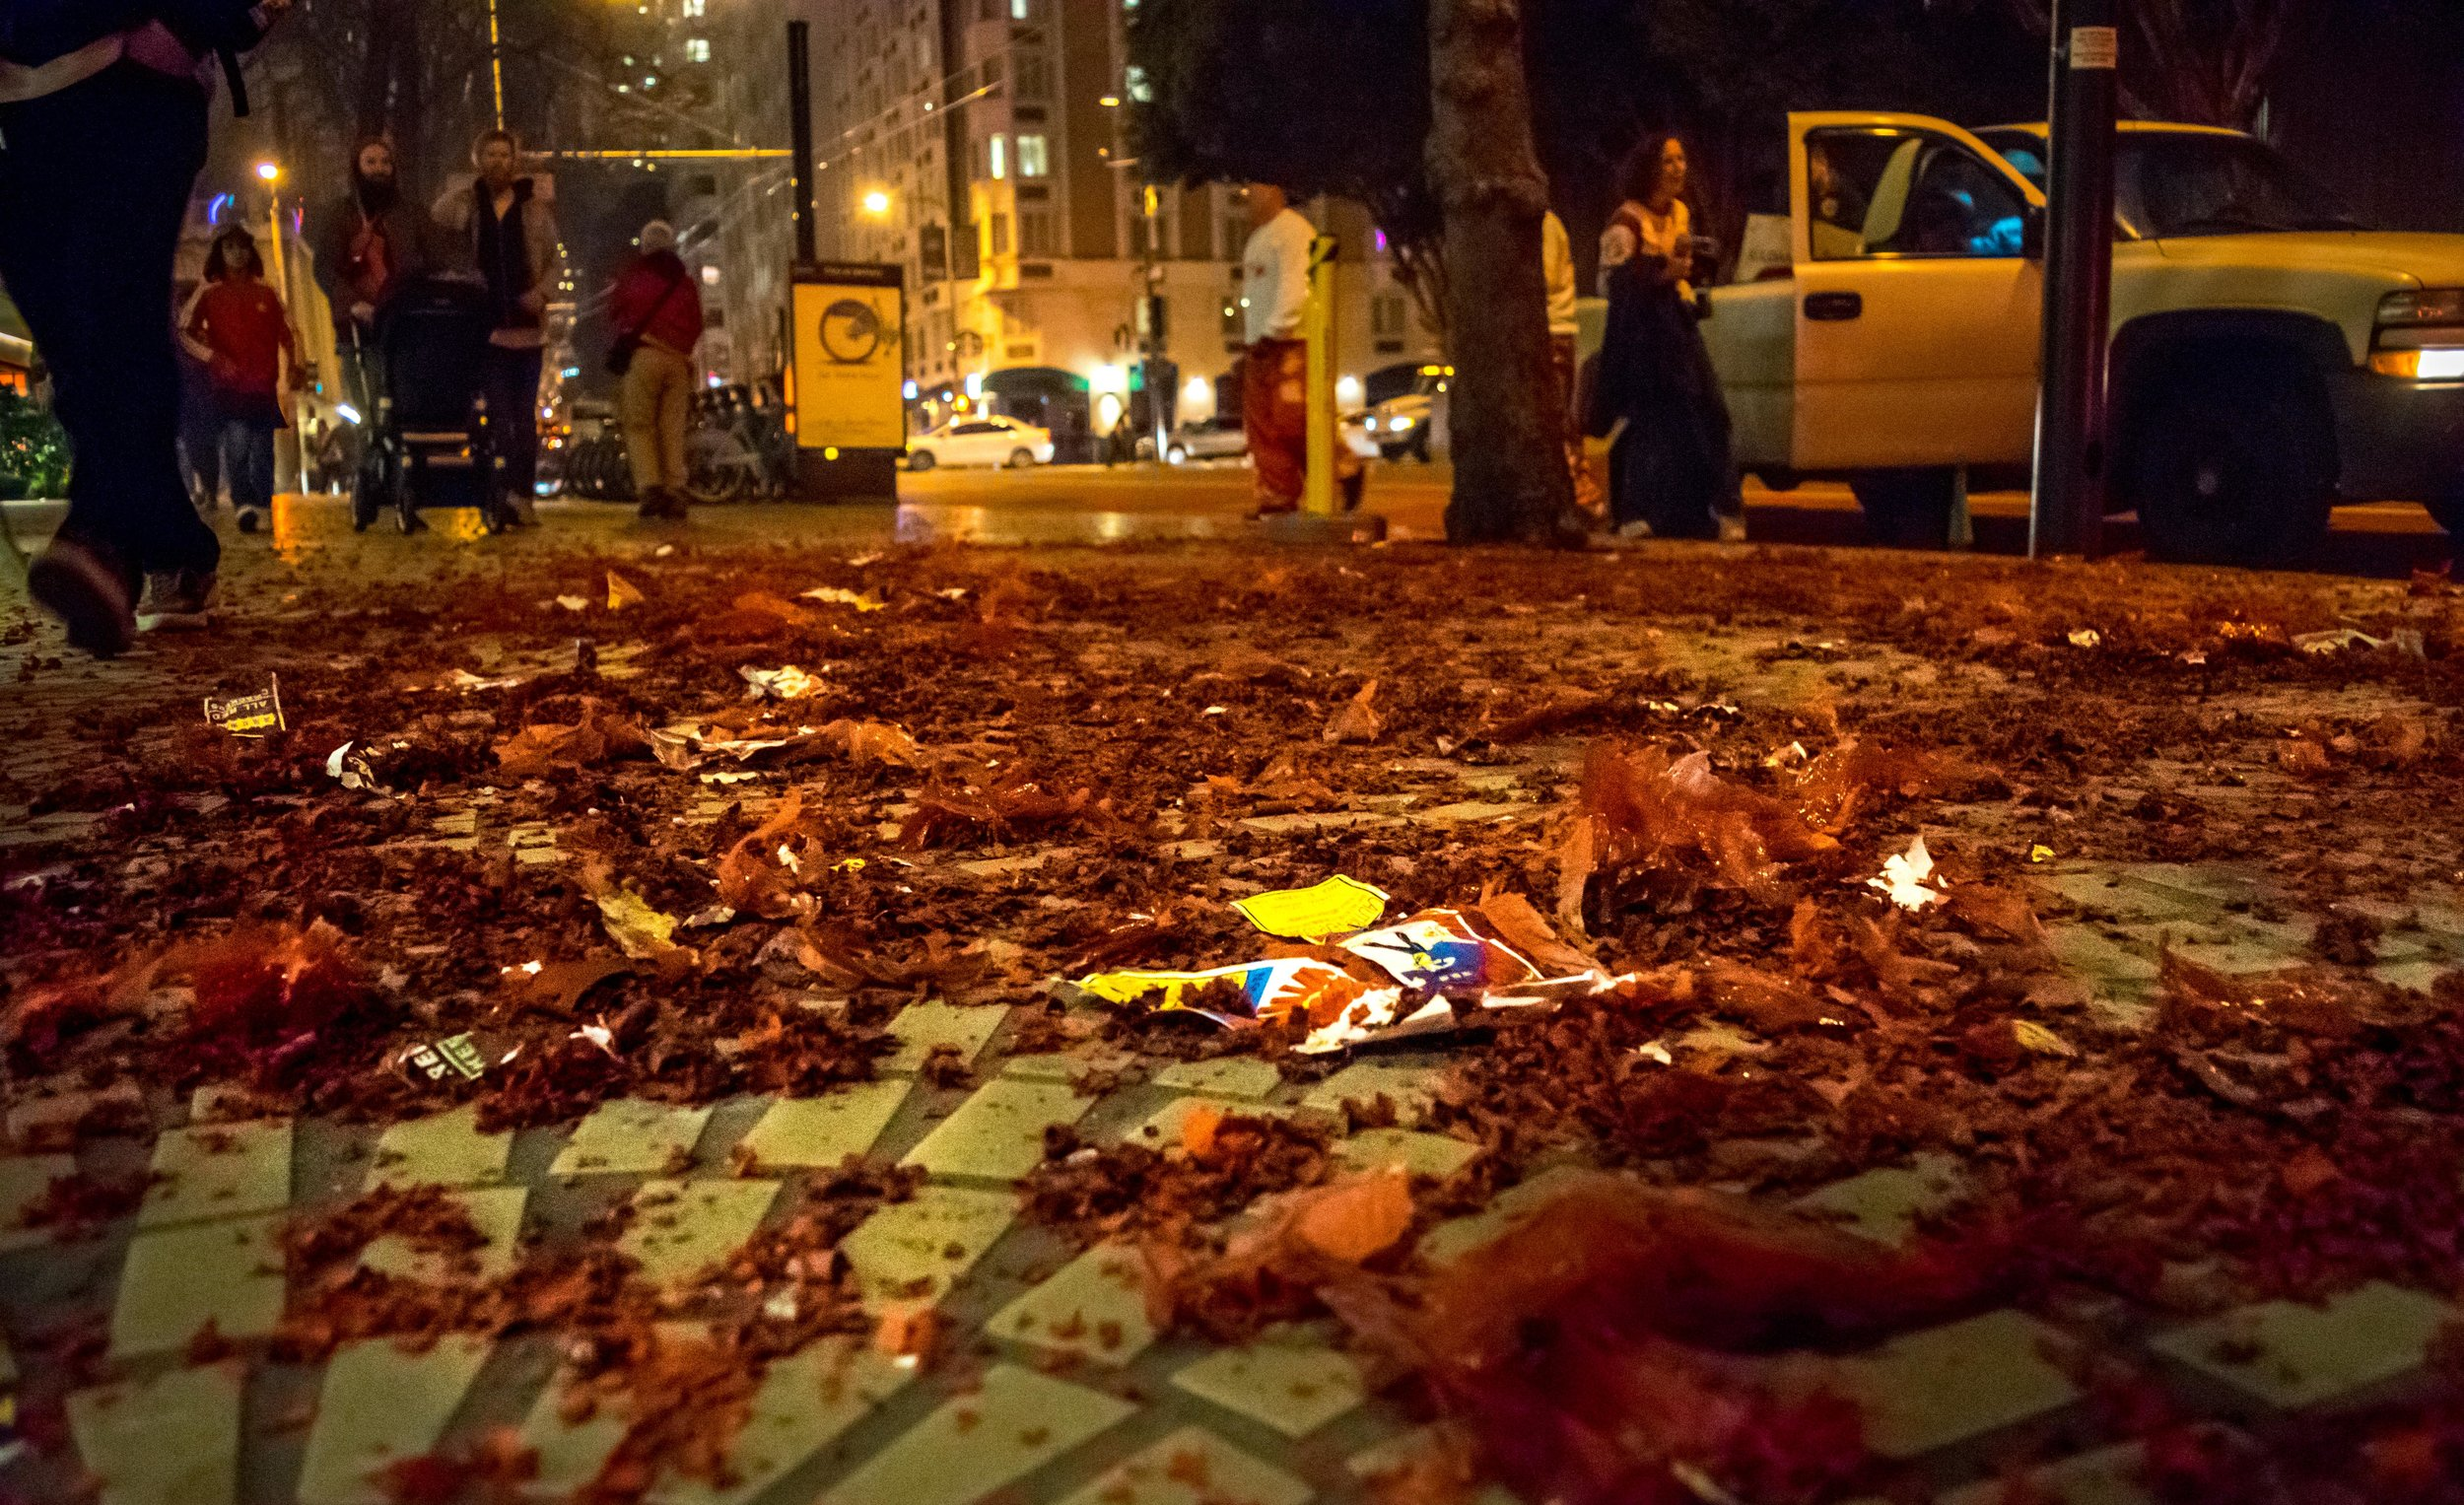 The pile of firecracker debris after the smoke cleared.